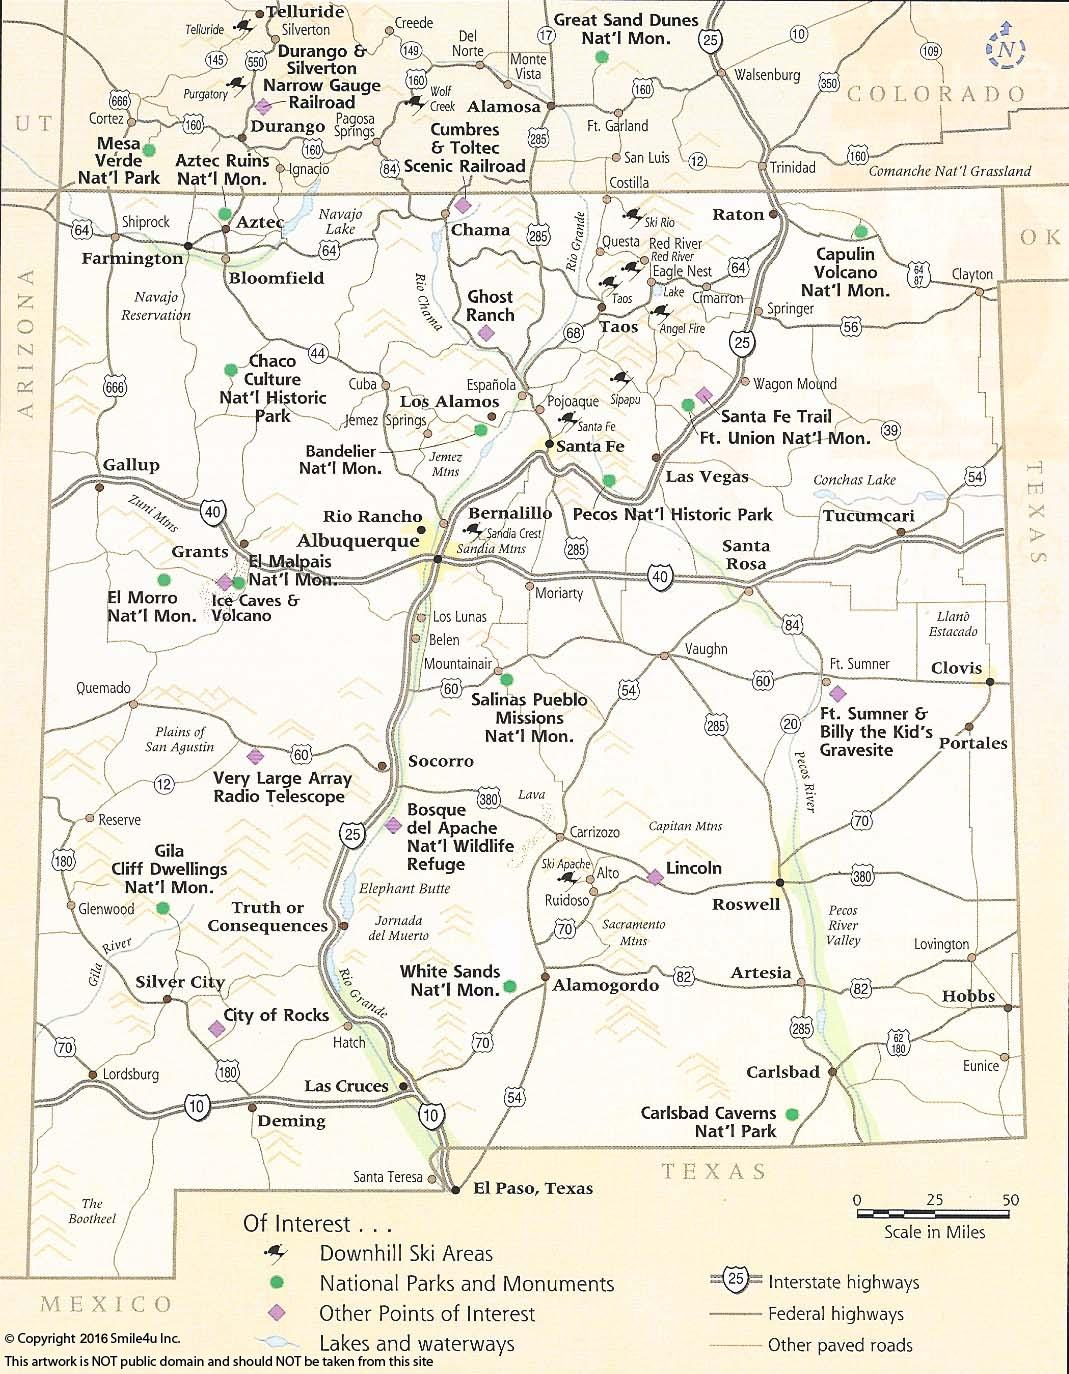 876741_watermarked_New Mexico State Map .jpg